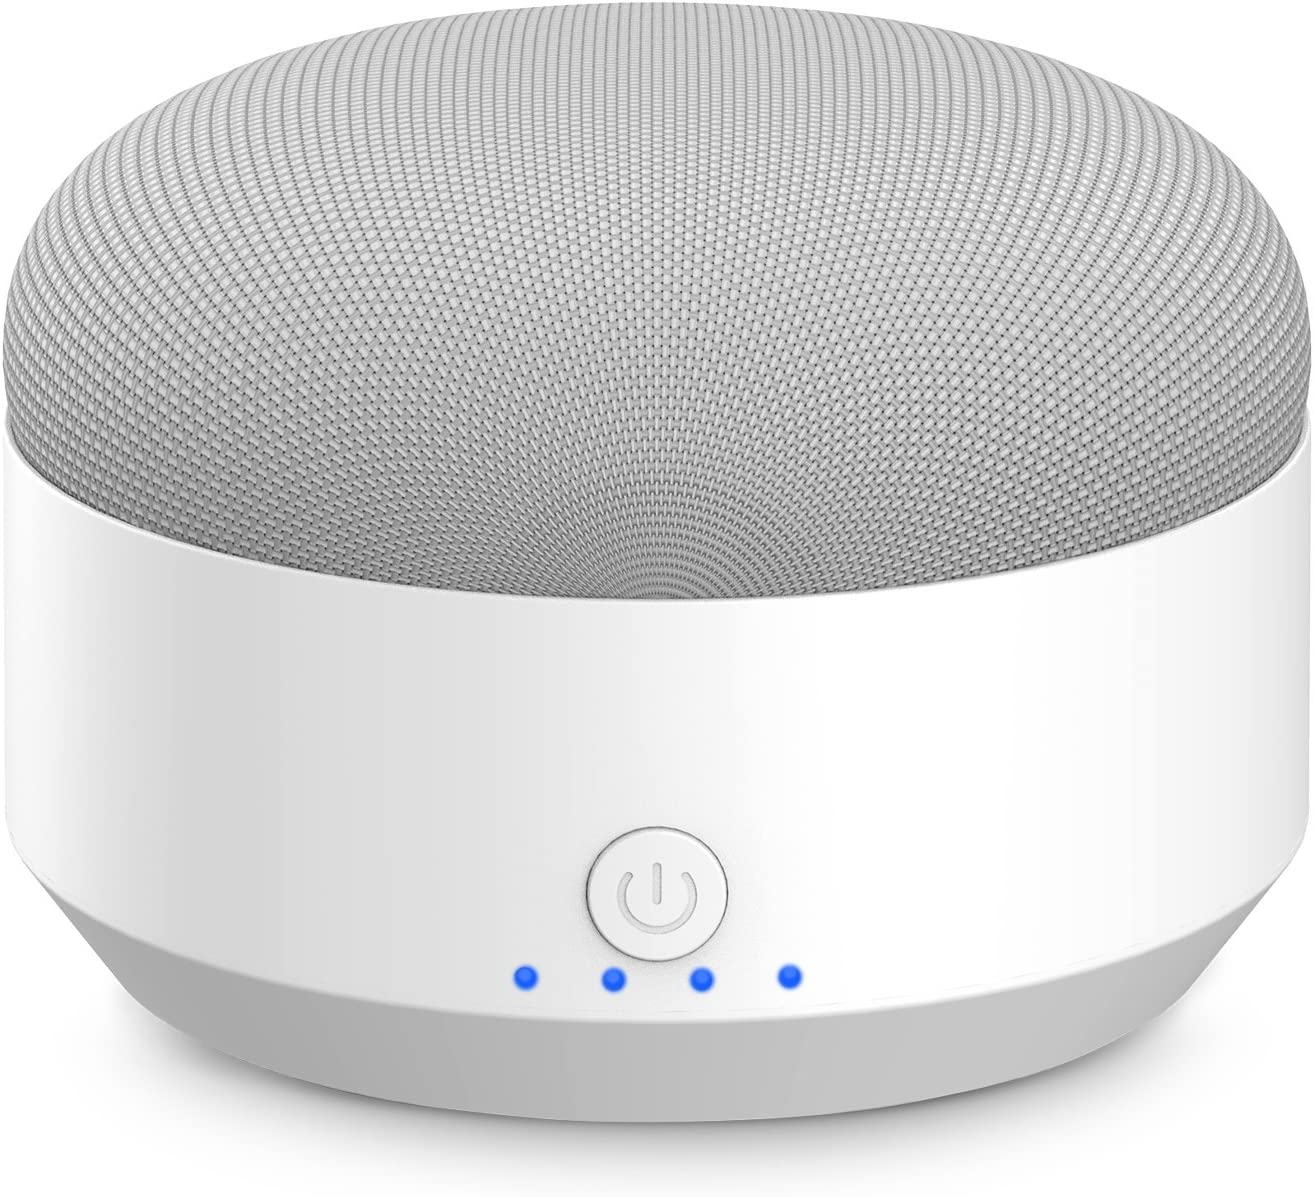 Portable External Battery Base for Google Home Mini, KASMOTION Google Home Mini Voice Assistant, Rechargeable Accessories, Magnetic Base& Anti-Slip Rubber Pads(White)-Home Mini is Not Included